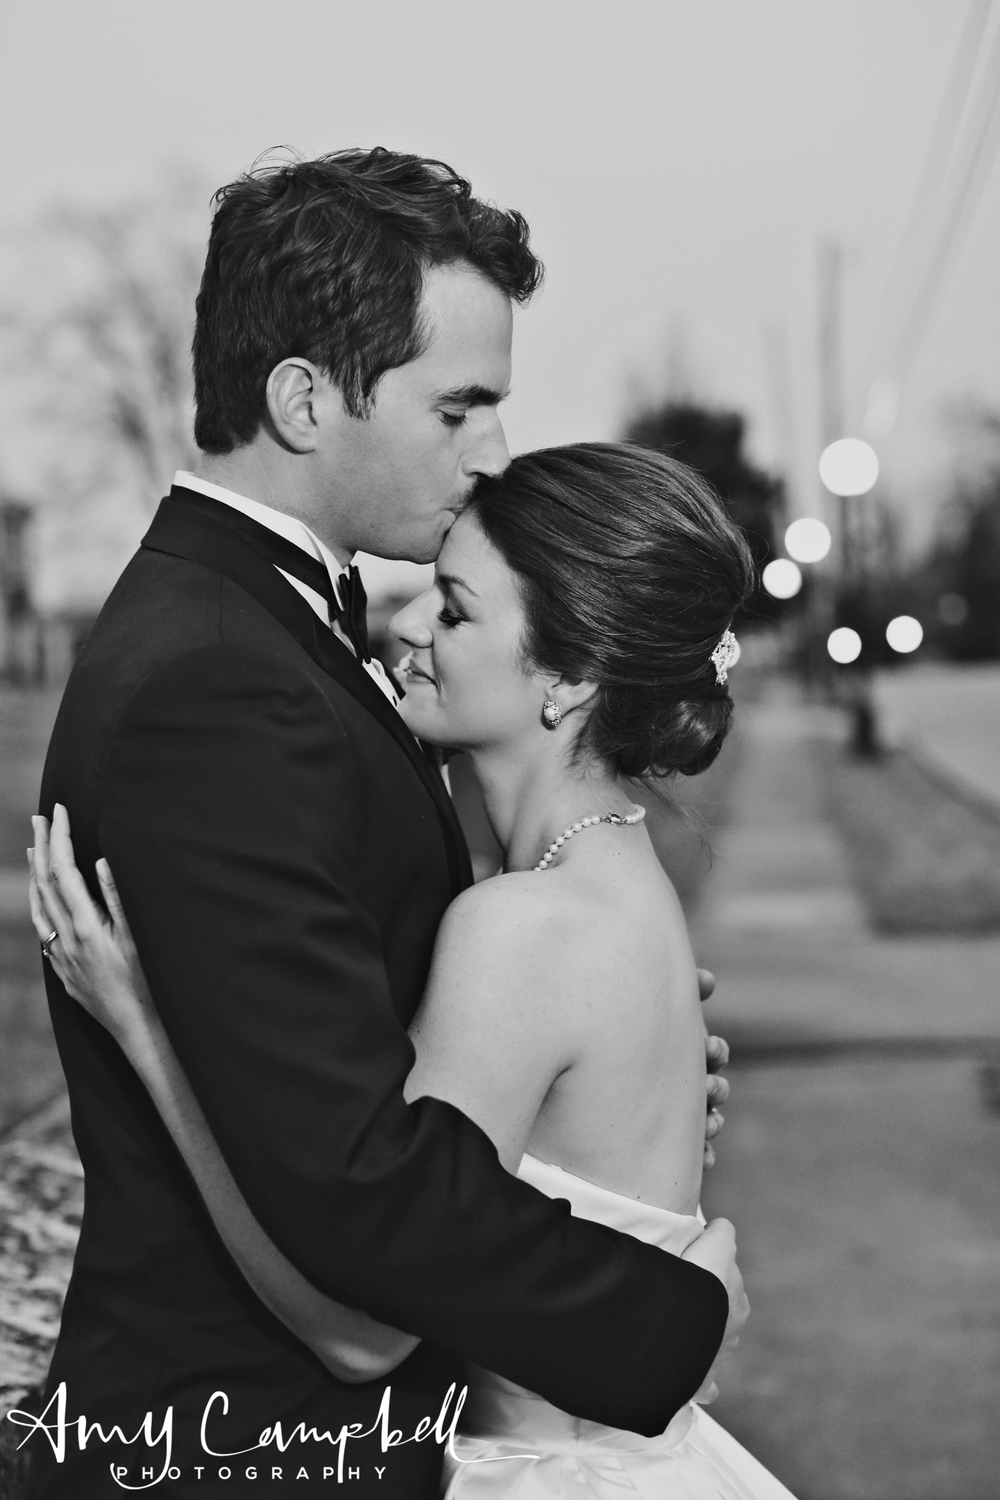 amyben_wed_winter_wedding_amycampbellphotography_01.jpg